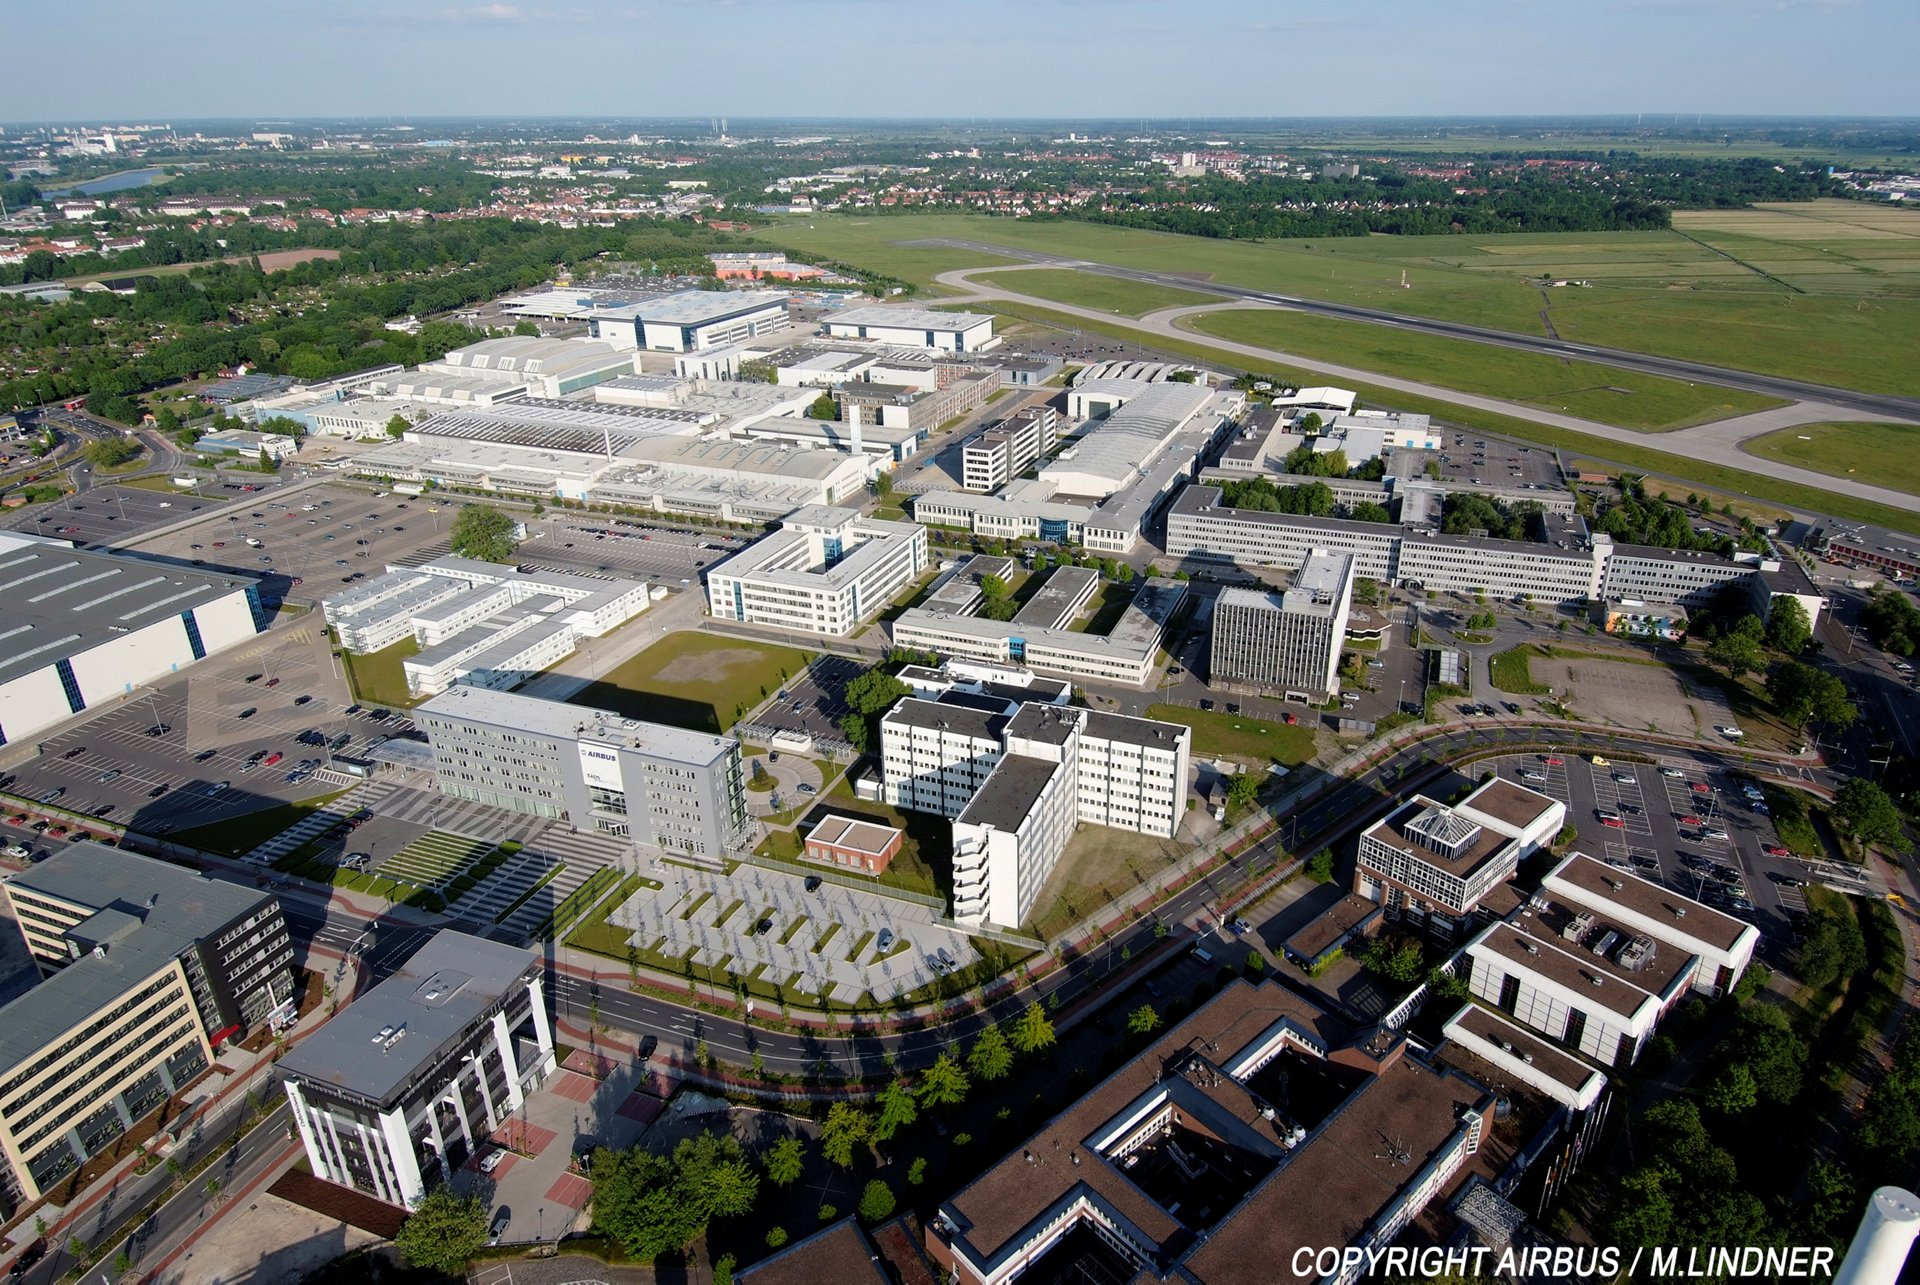 Airbus' Bremen, Germany site specialises in the design, development and manufacture of high-lift systems for the wings of all Airbus programmes